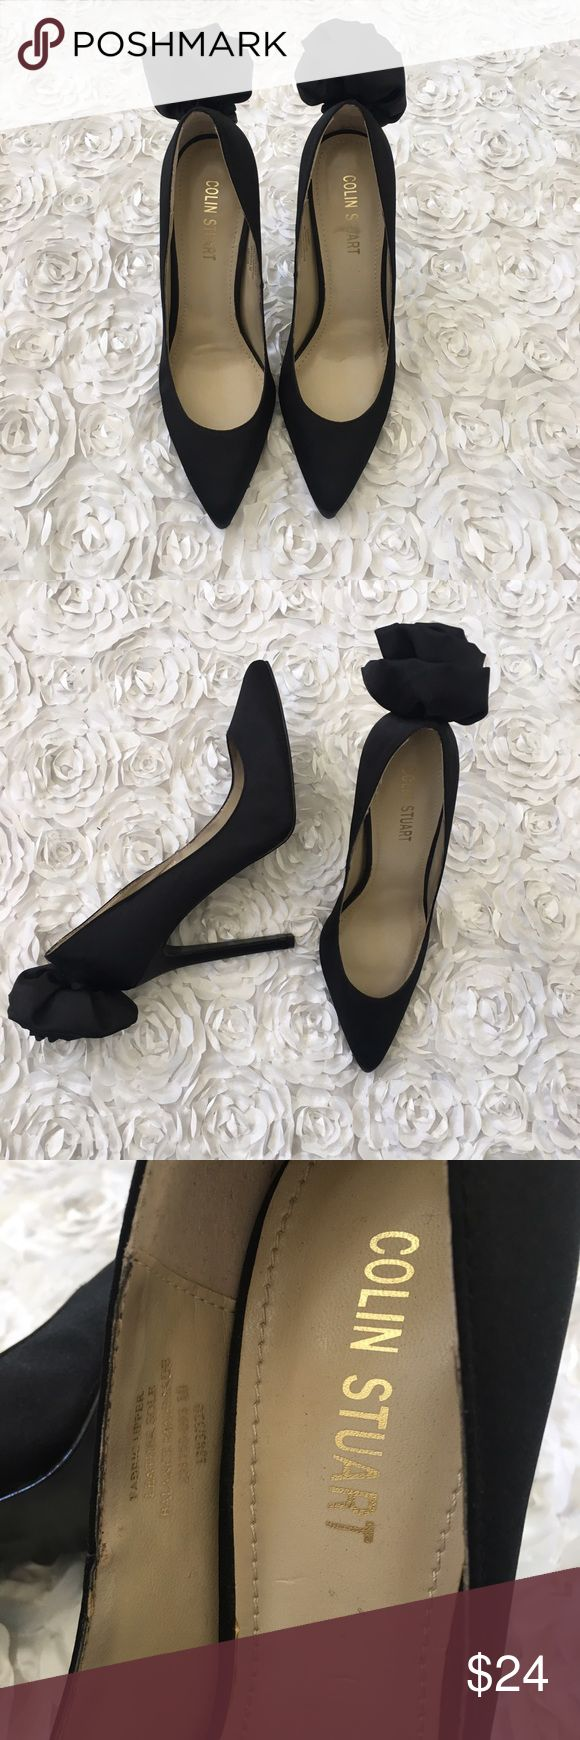 ✨NEW Colin Stuart Flower Satin Black Pump Heels Brand New Without Box Colin Stuart Black Satin Pumps with a Flower on the heel 👠💋 Super cute and sexy with any dress! Make me an offer :) Colin Stuart Shoes Heels